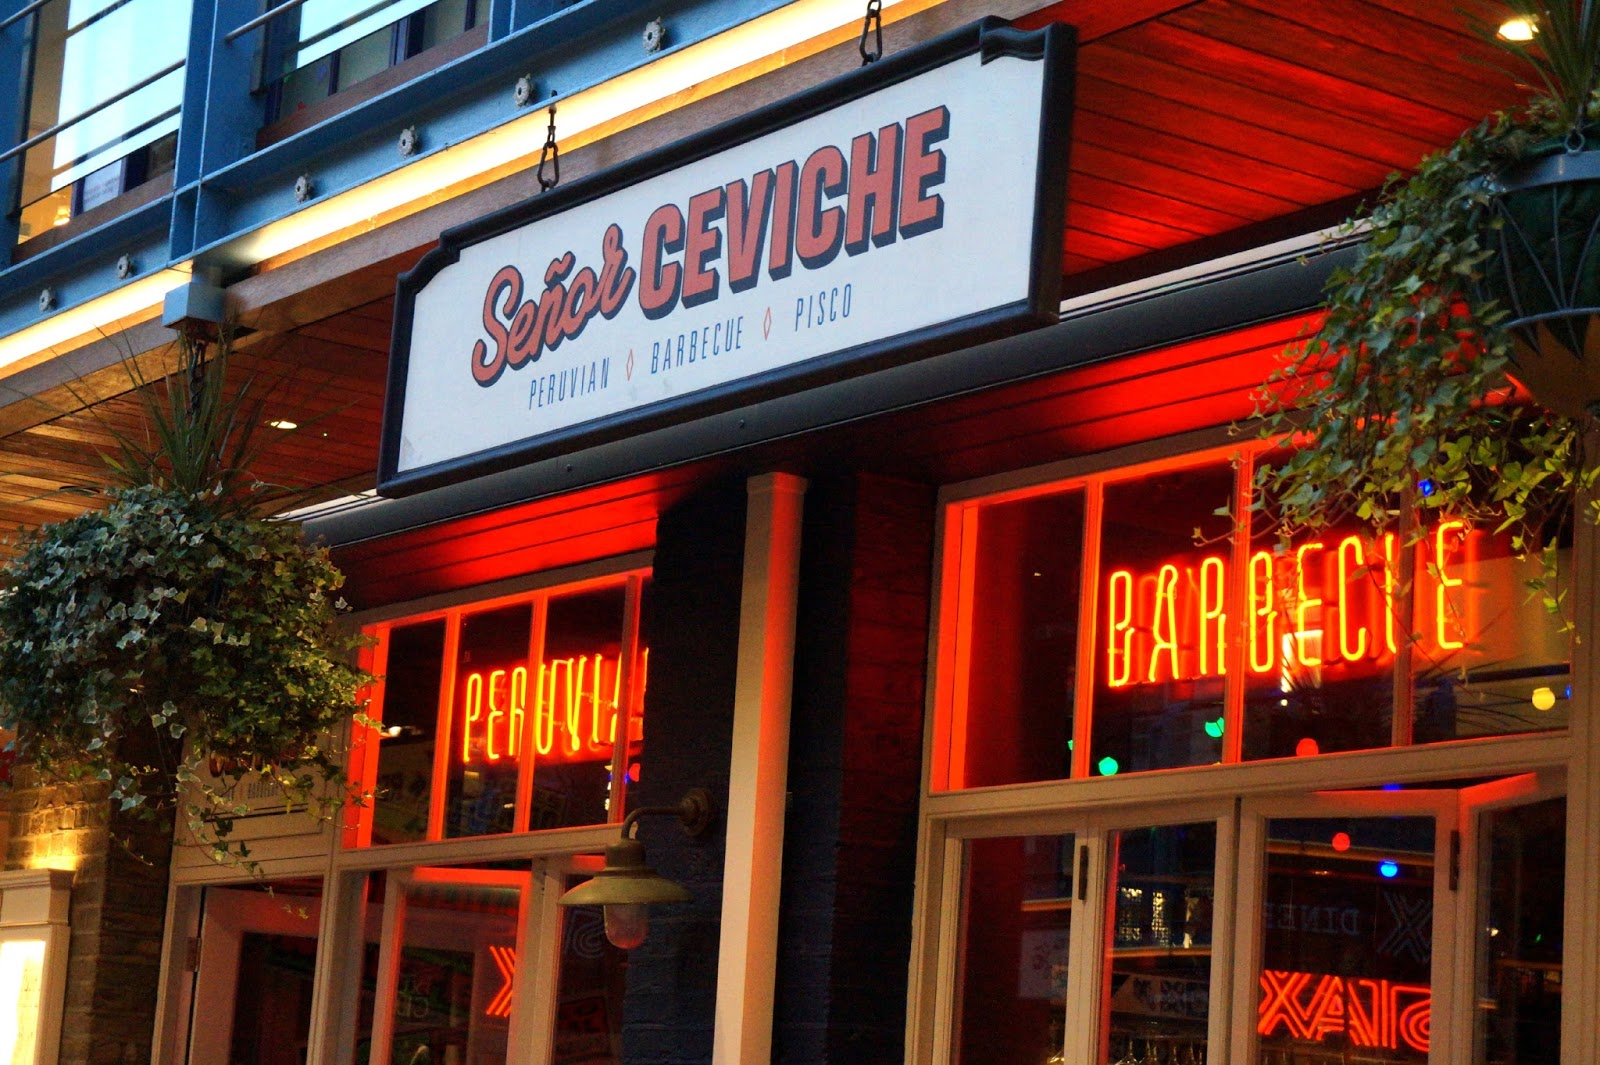 Outside Senior Ceviche restaurant